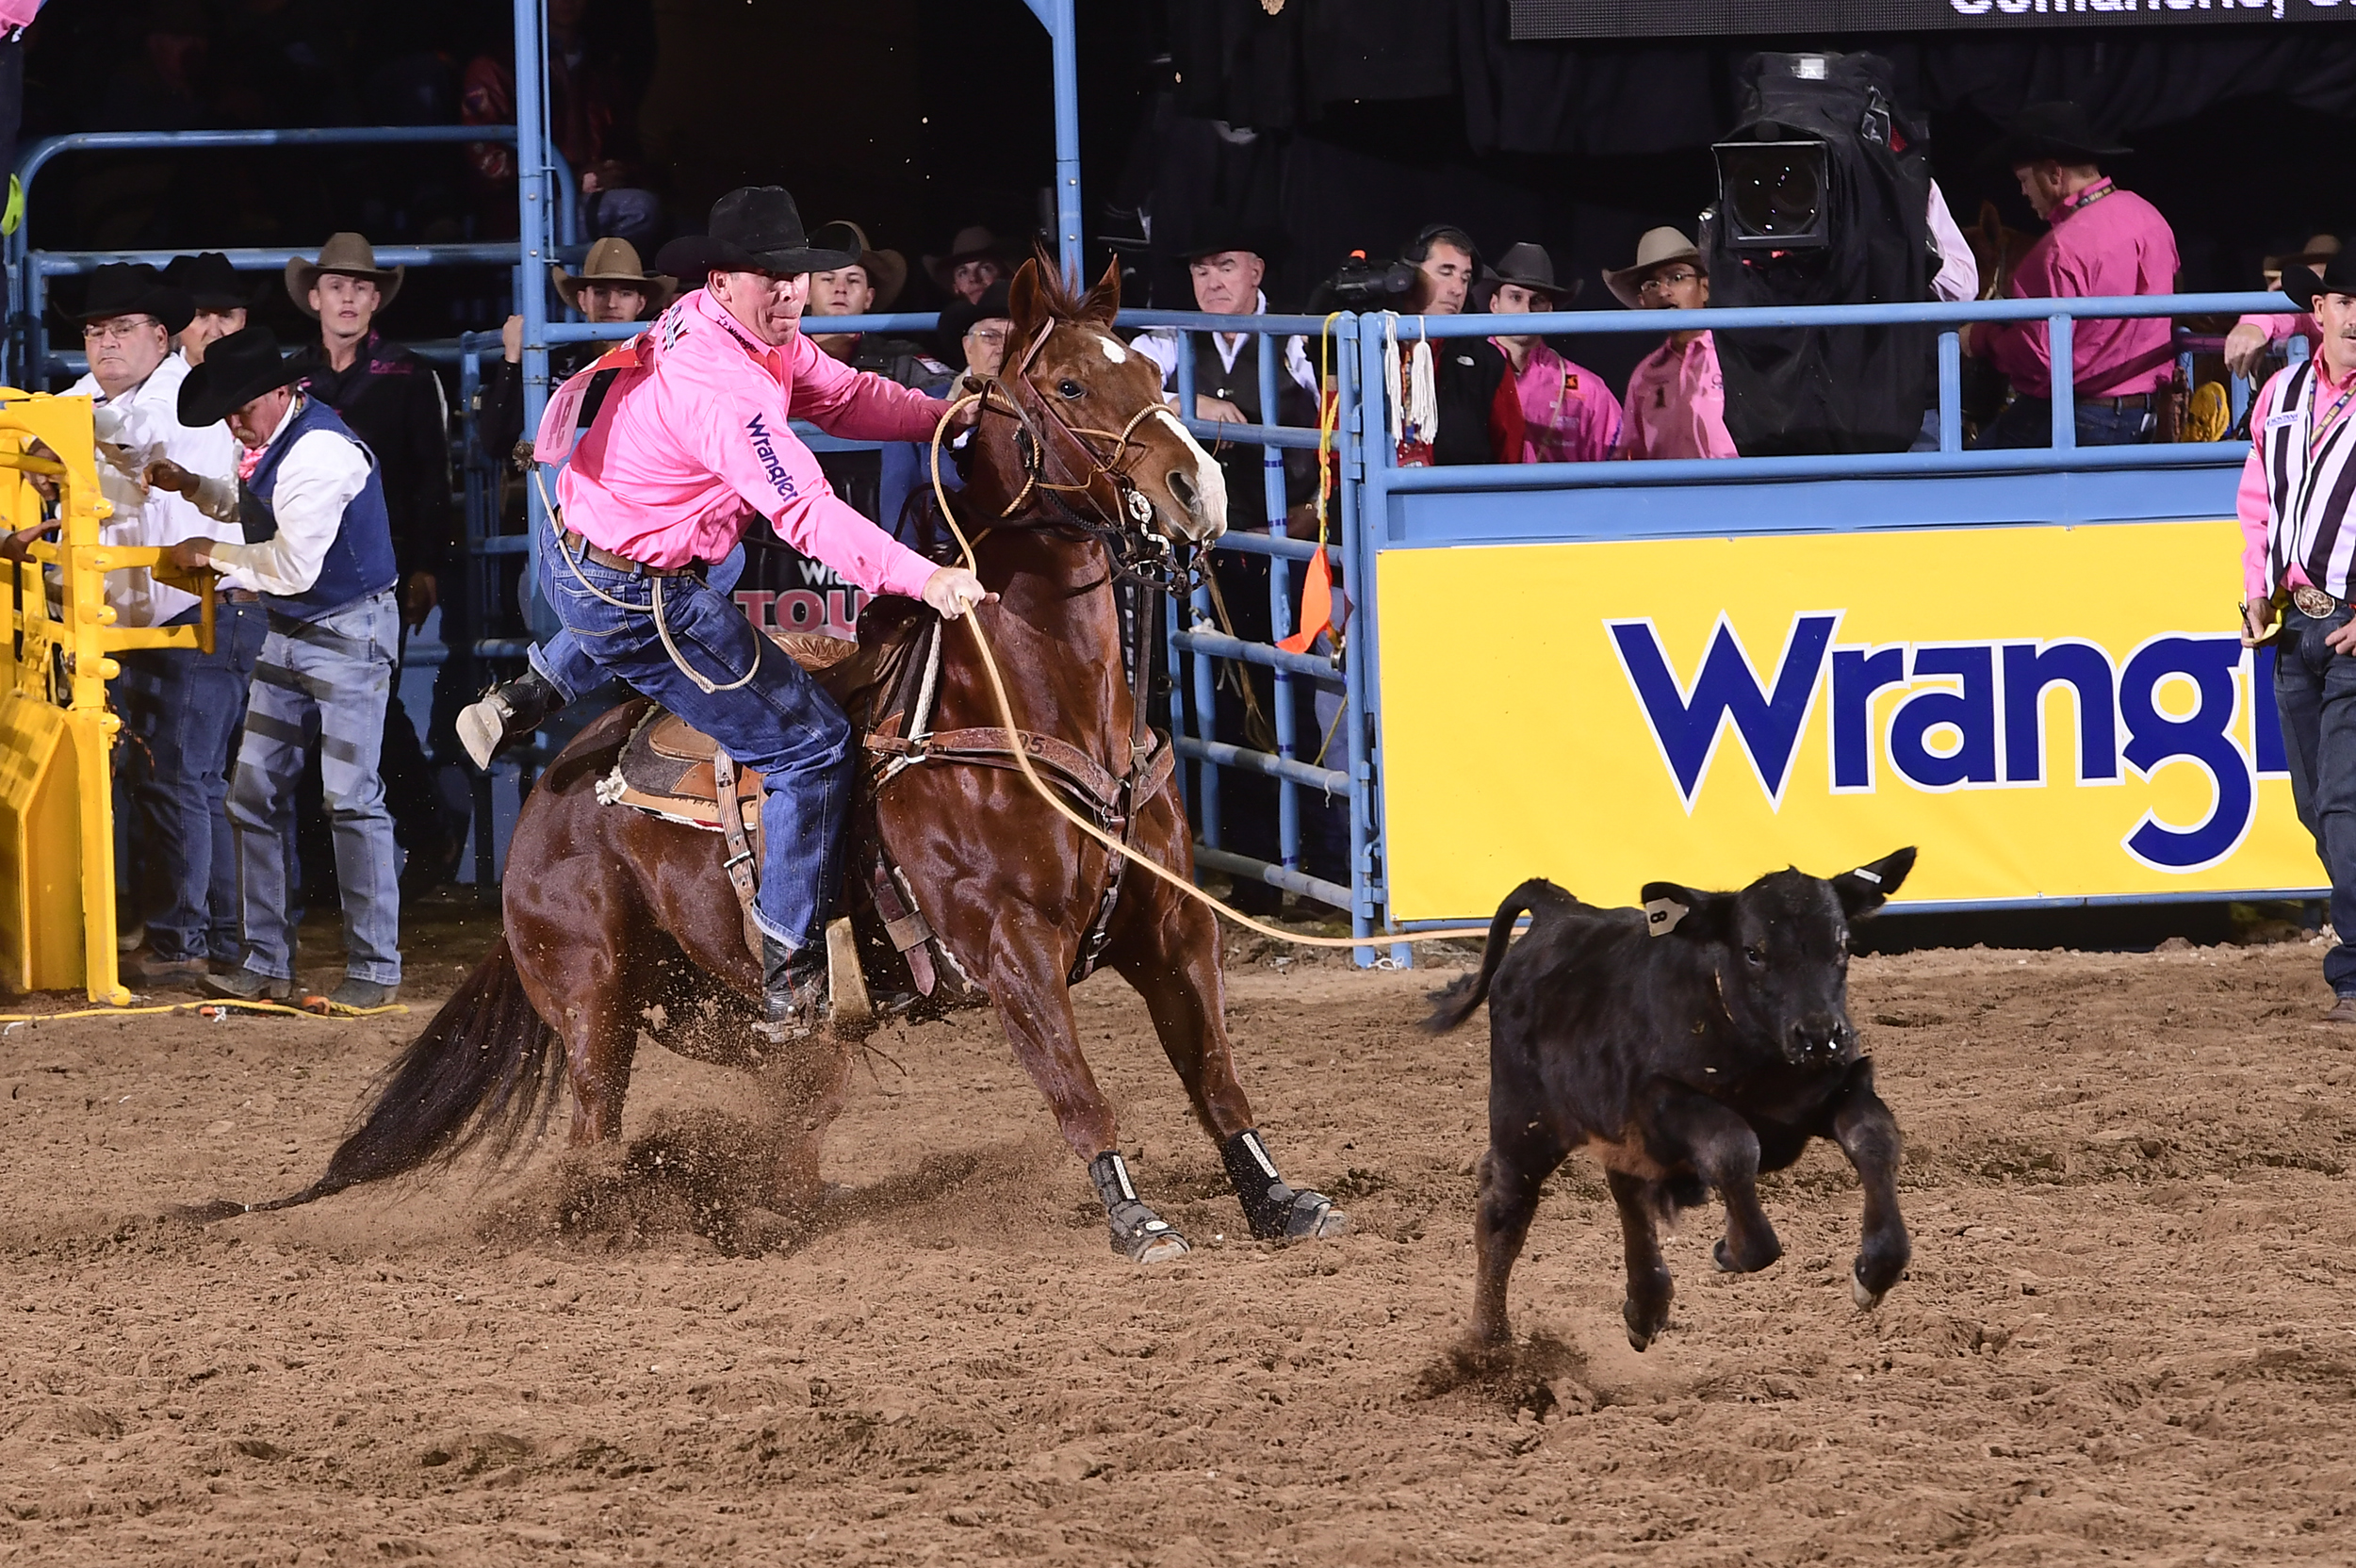 Ryan Jarrett earned his first two National Finals Rodeo qualifications in 2005, in steer wrestling and tie-down roping, and earned the all-arould world title that year. He returns to the NFR for the 12th time and is seeking his second gold buckle. (PRCA PRORODEO PHOTO BY JAMES PHIFER)